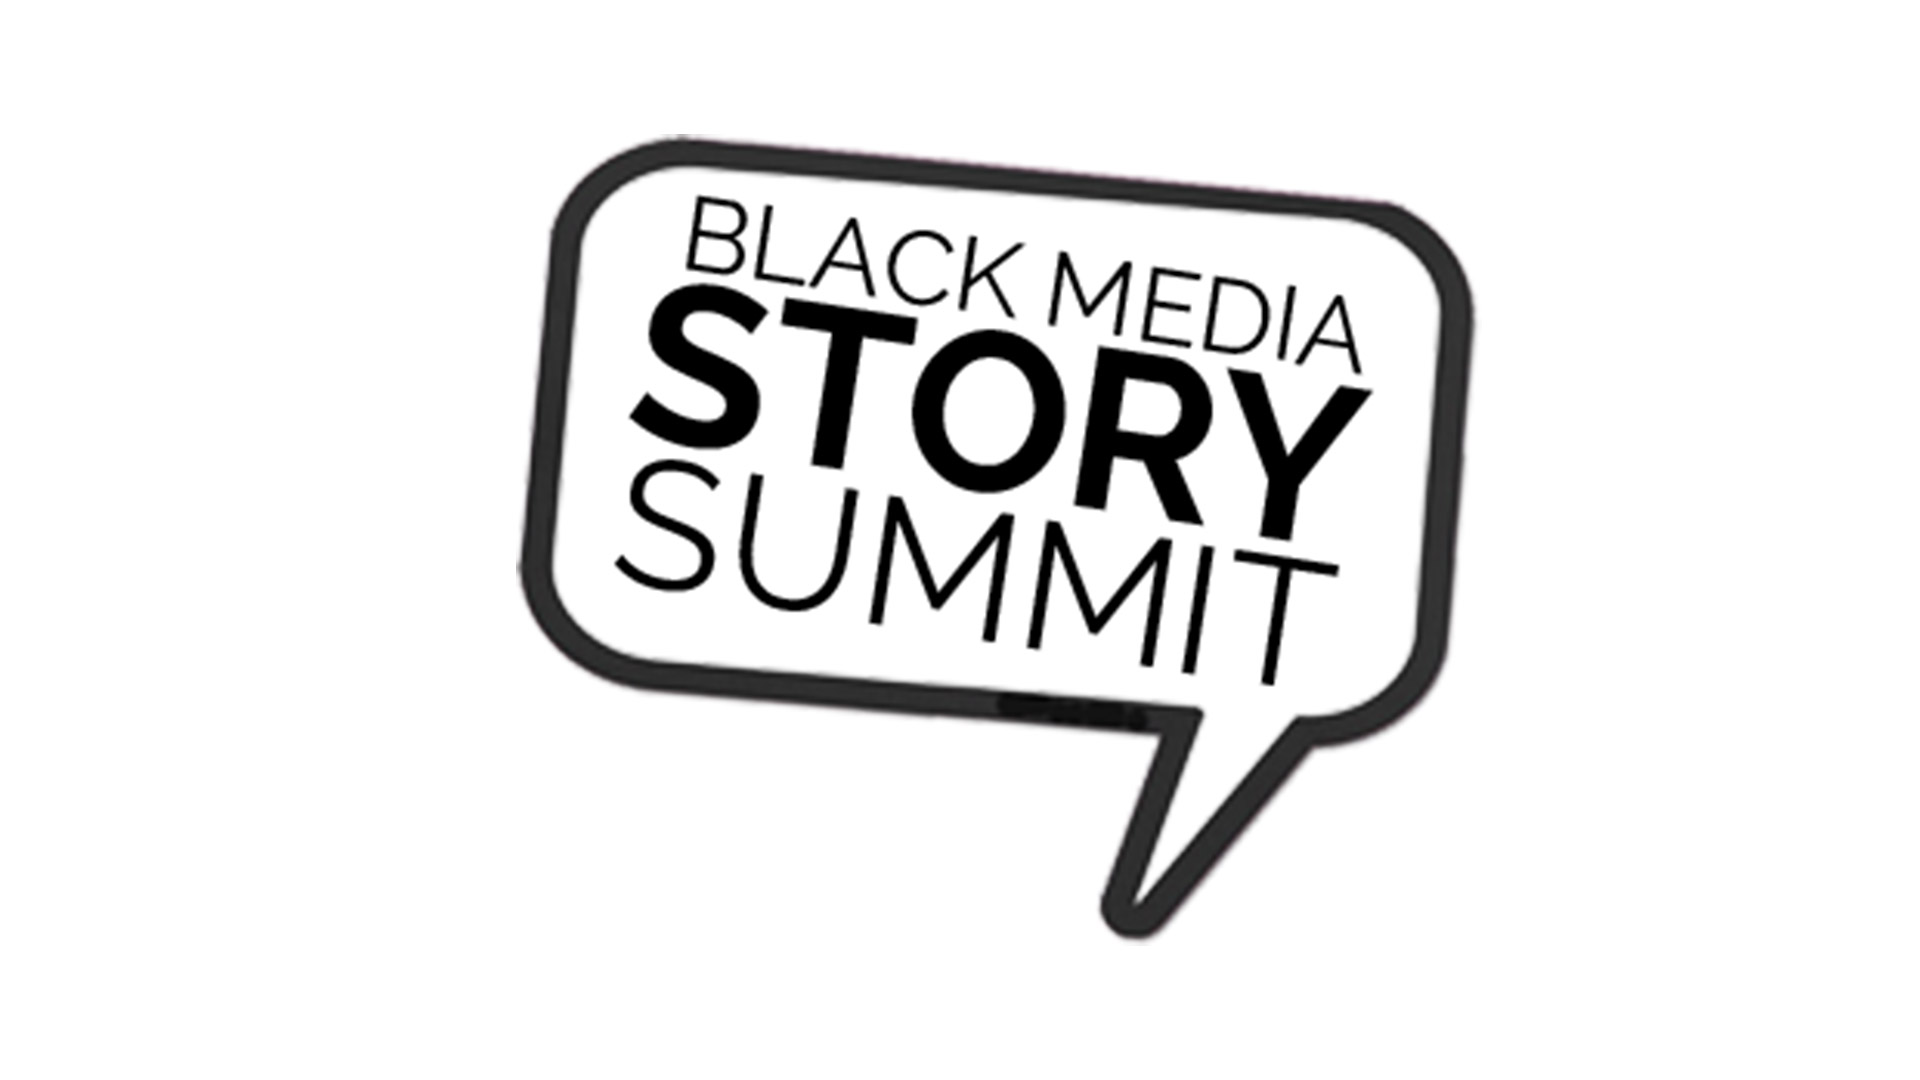 Black Media Story Summit_logo_1920x1080